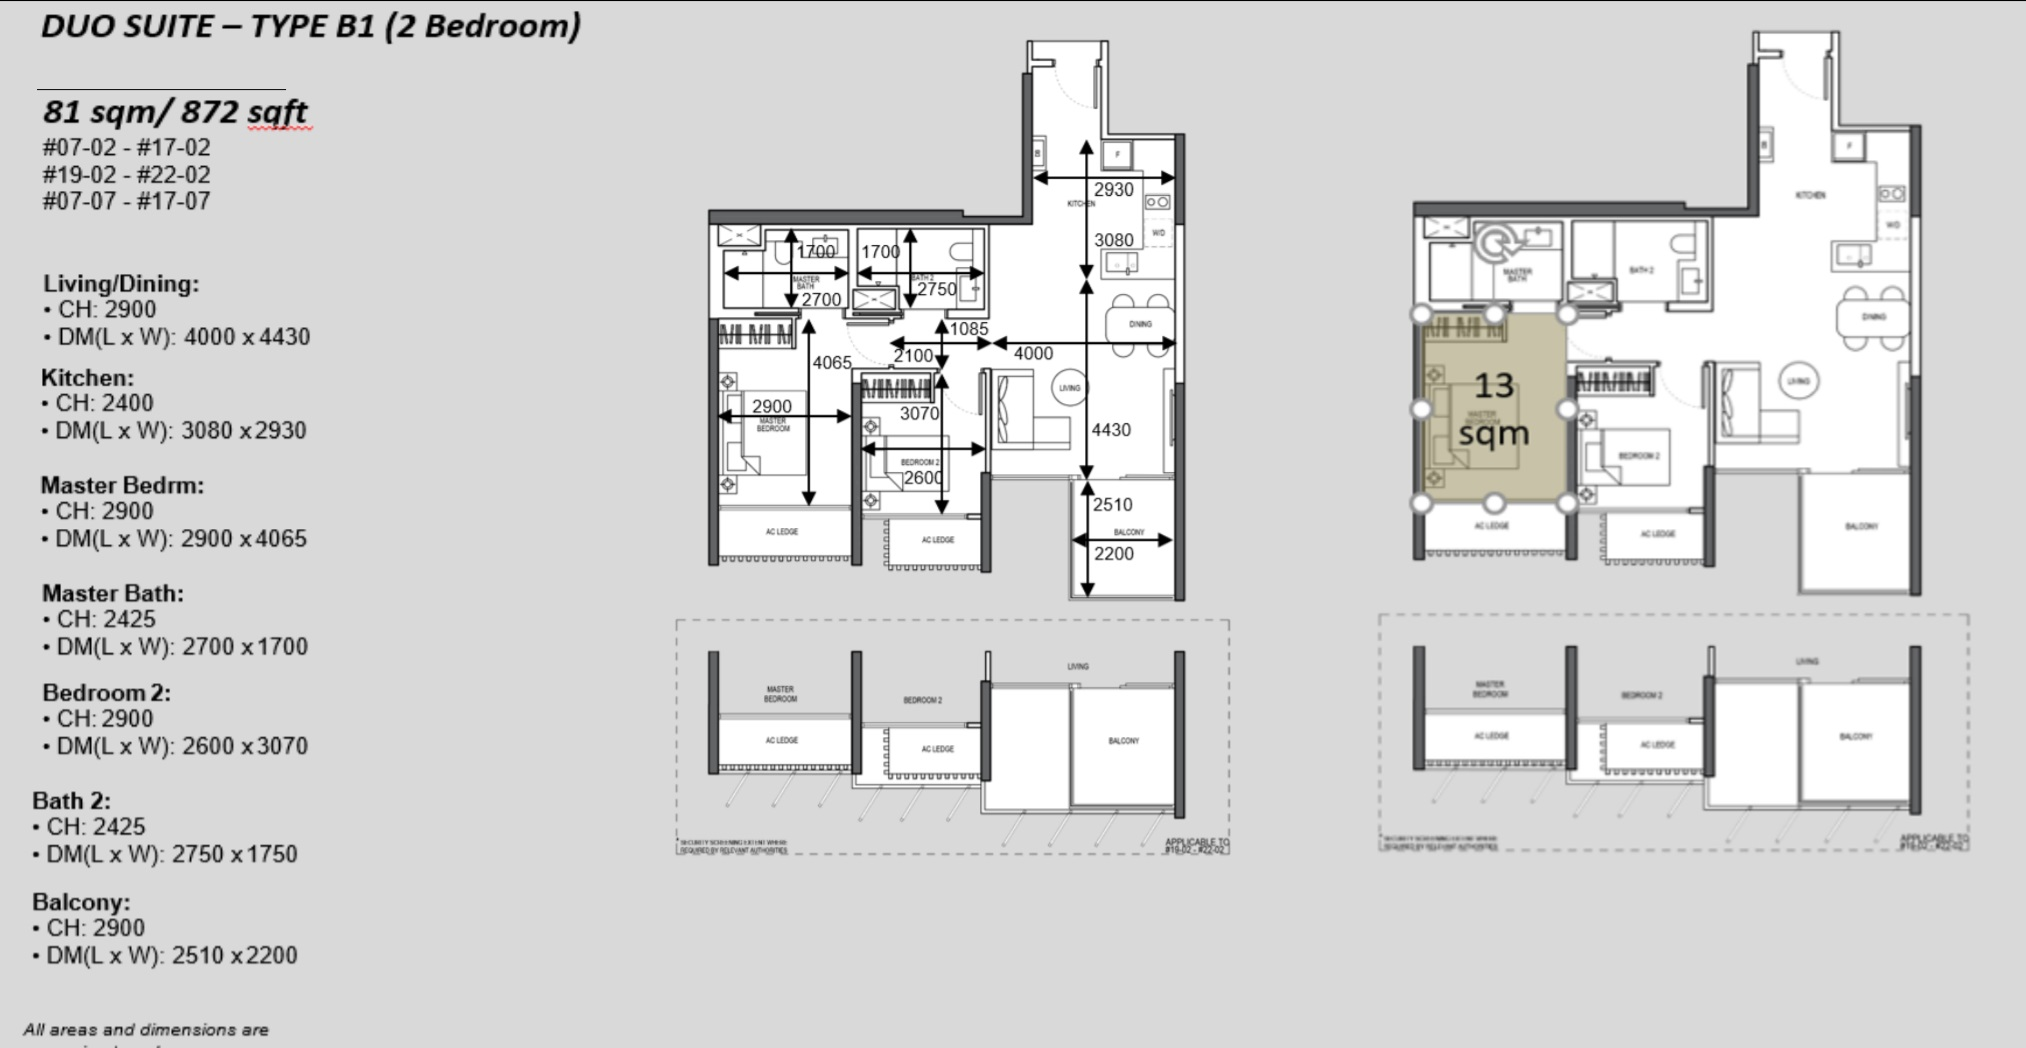 The Atelier condo floorplan 2 bedroom Type B1